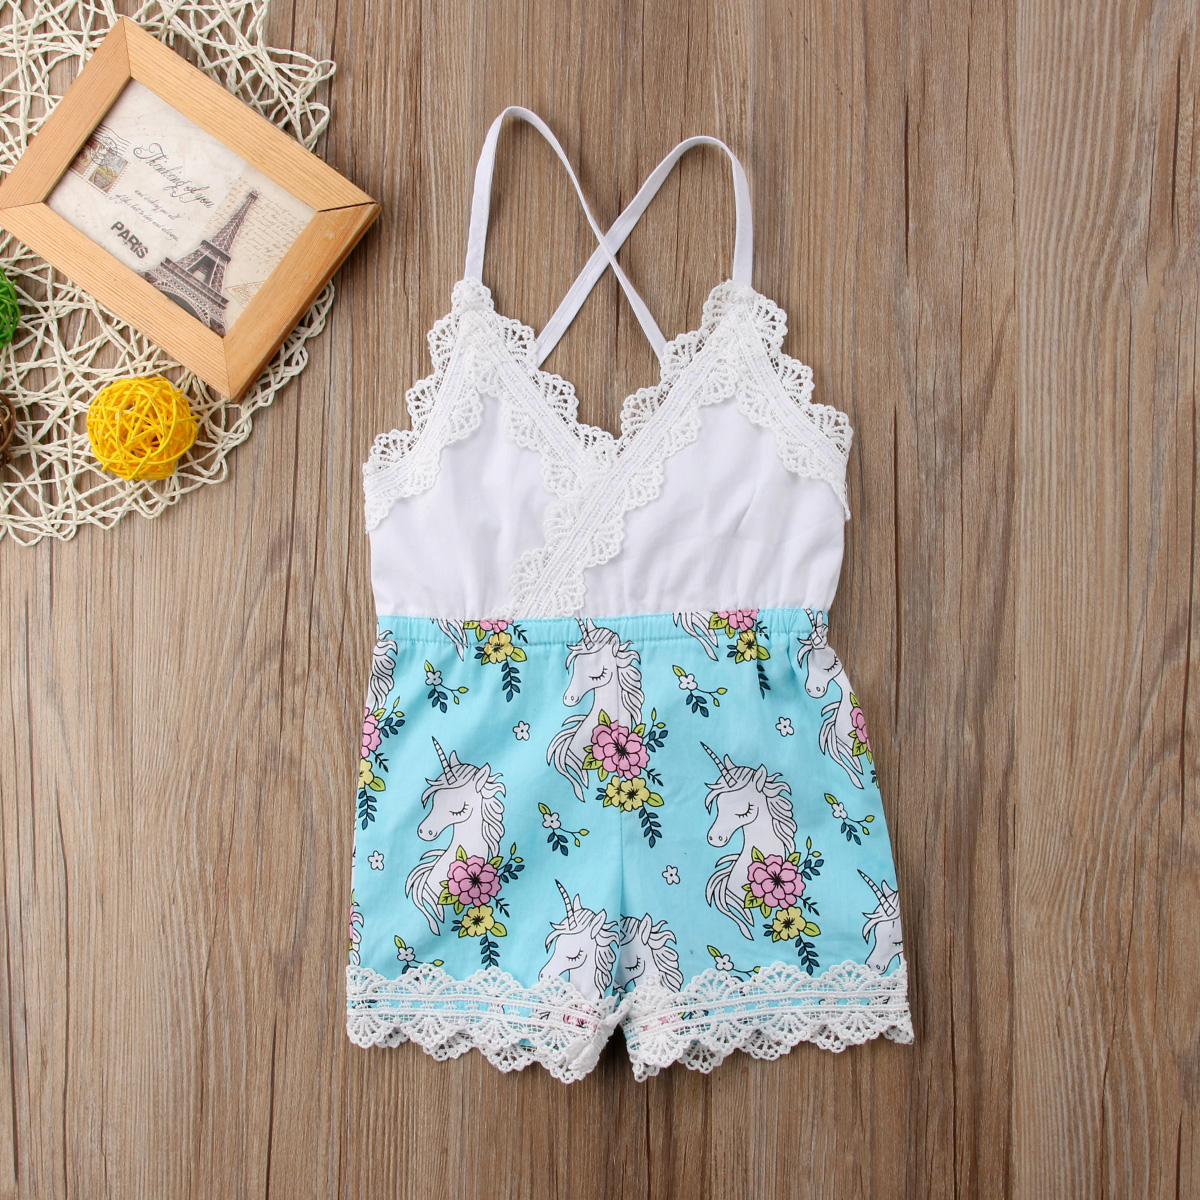 Newborn Baby Girls Lace Cartoon Horse Romper Jumpsuit Outfits Clothes Sunsuit Sleeveless Belt Cotton Romper Clothing